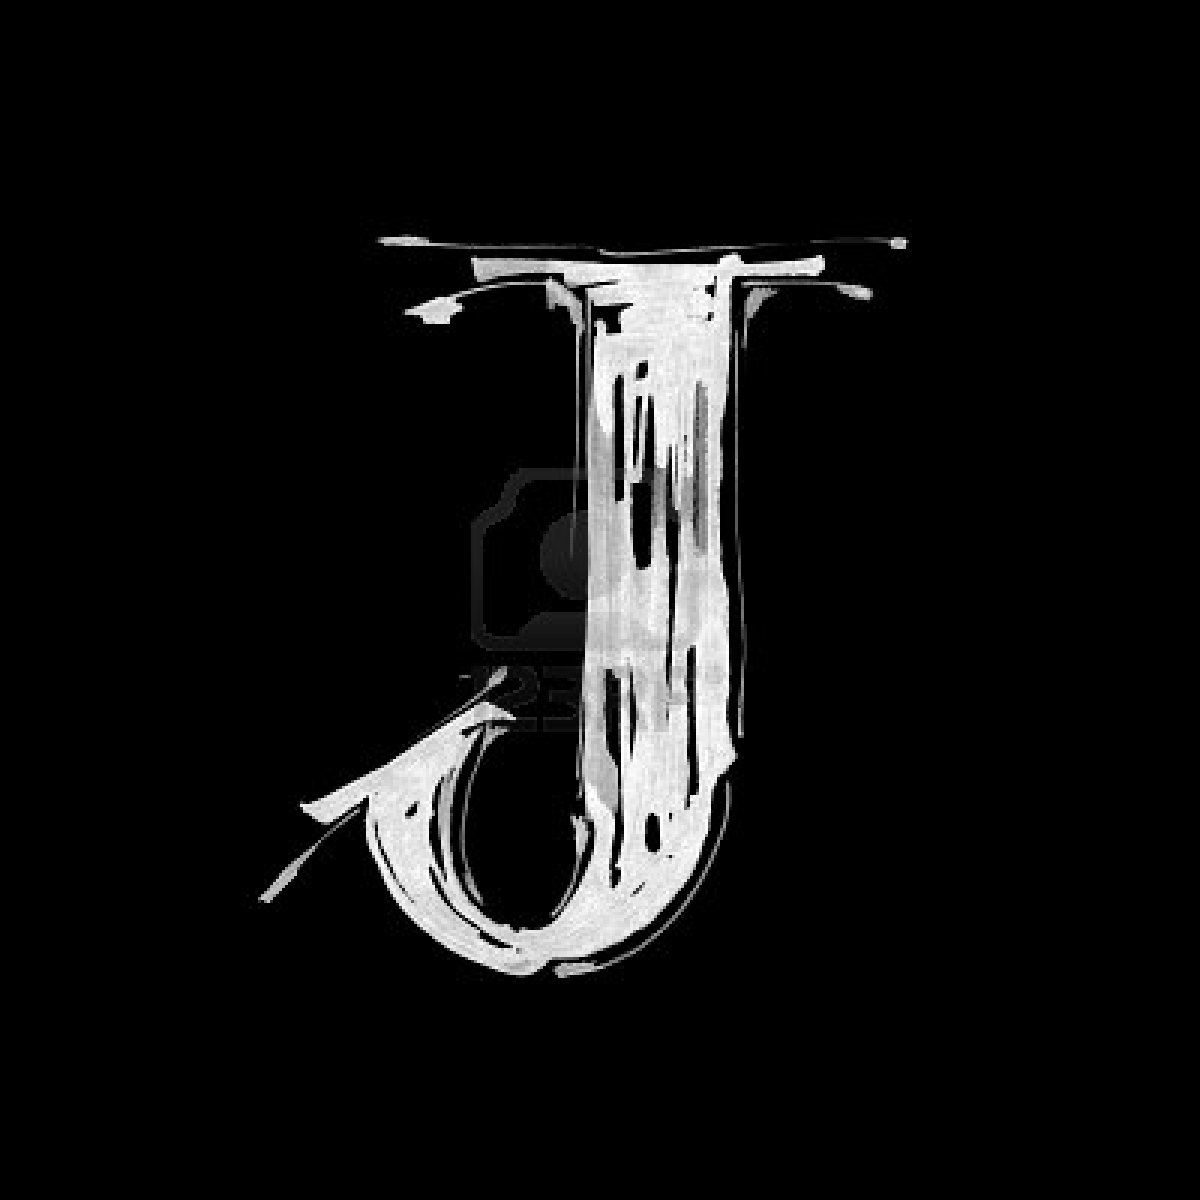 Download Letter J wallpapers to your cell phone - letter j logo | Phone in 2019 | Cellphone ...